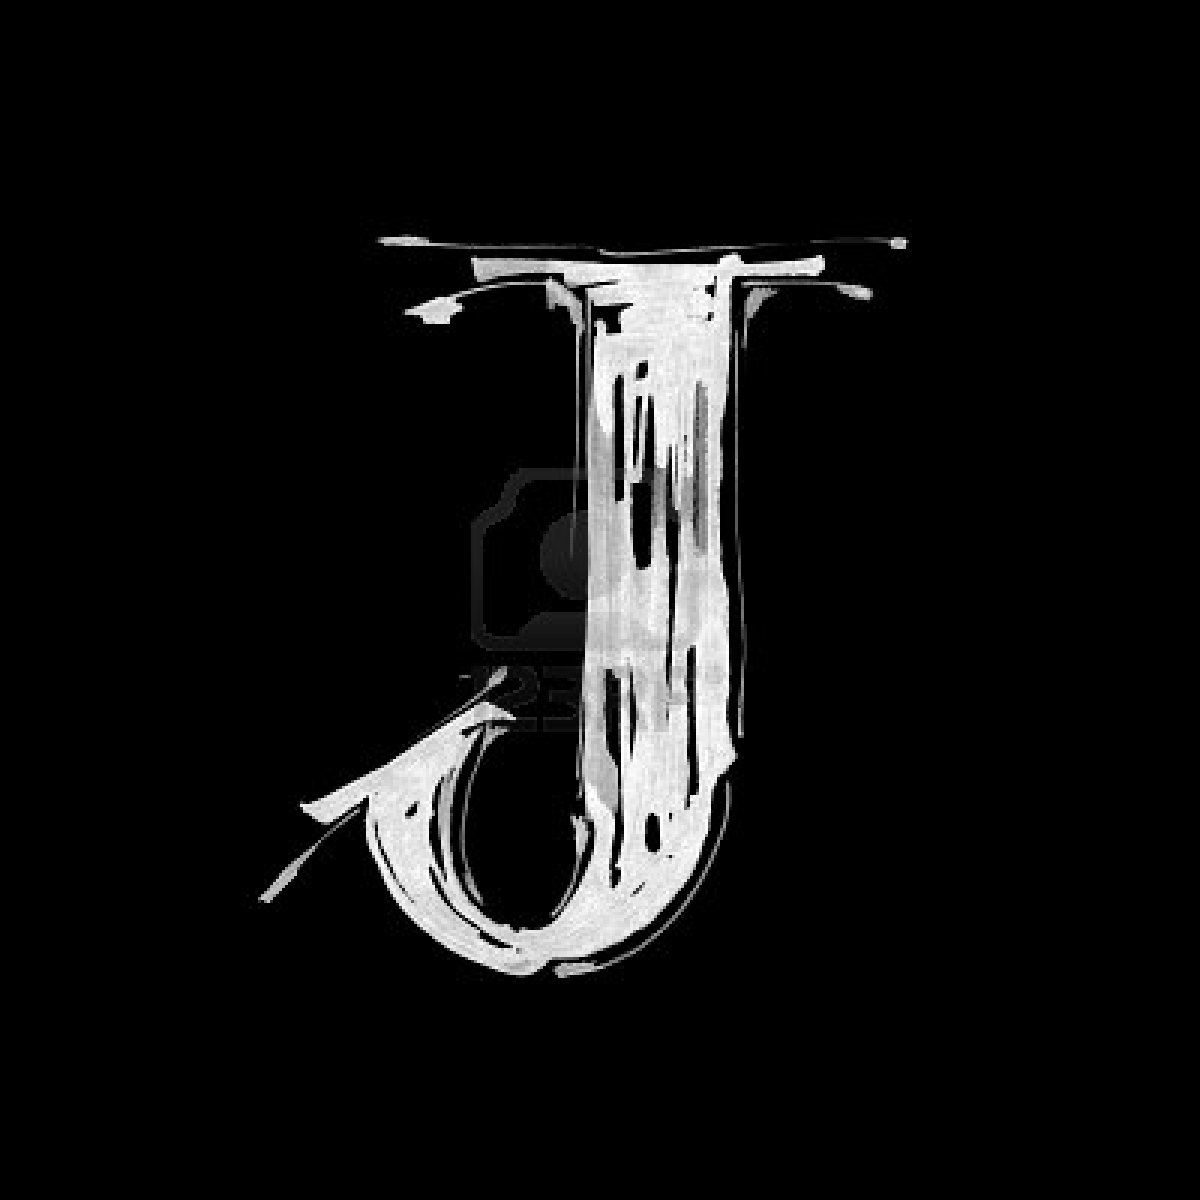 Download Letter J wallpapers to your cell phone - letter j logo | Phone in 2019 | Cellphone ...